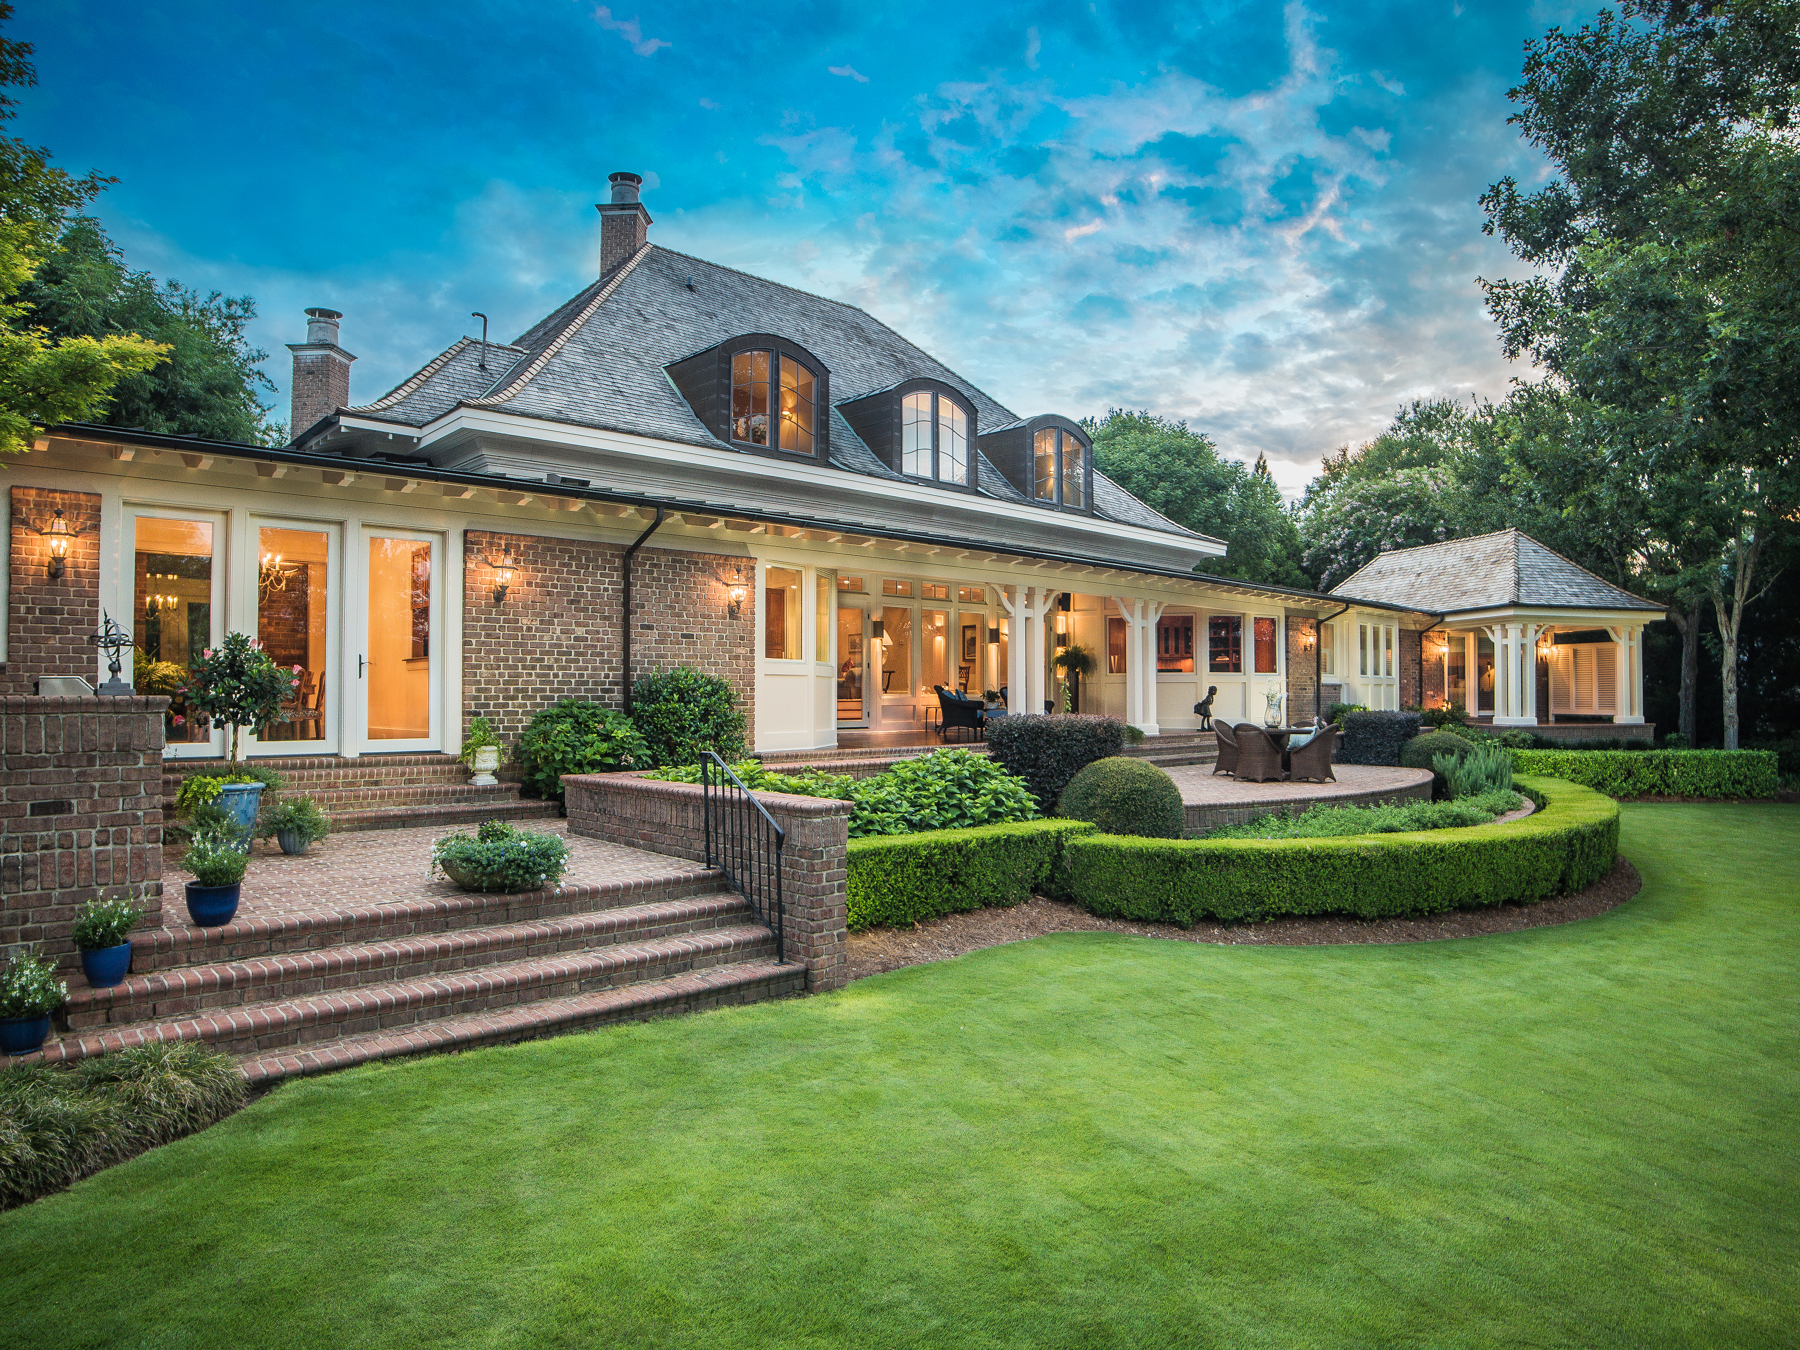 Single Family Home for Sale at Exquisite details define this inspired waterfront estate 2001 Balmoral Place Landfall, Wilmington, North Carolina, 28405 United States